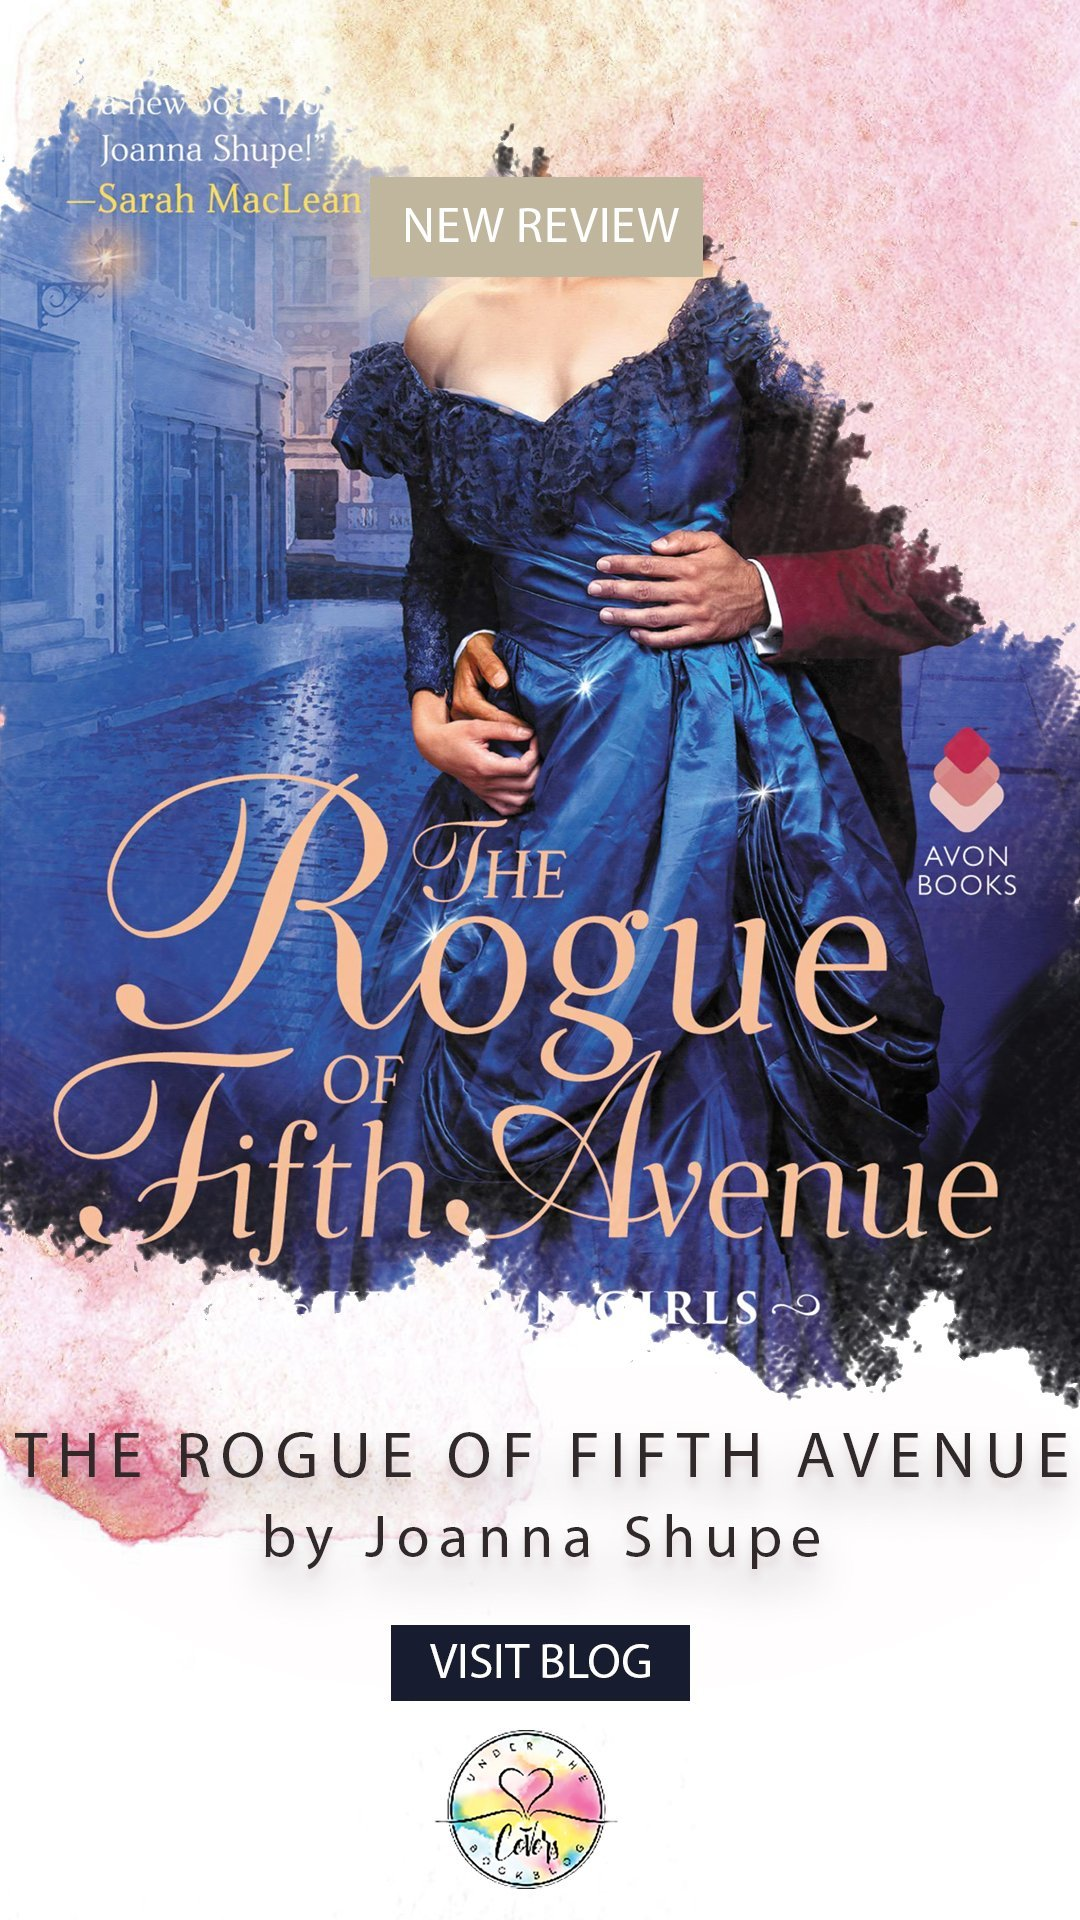 ARC Review: The Rogue of Fifth Avenue by Joanna Shupe